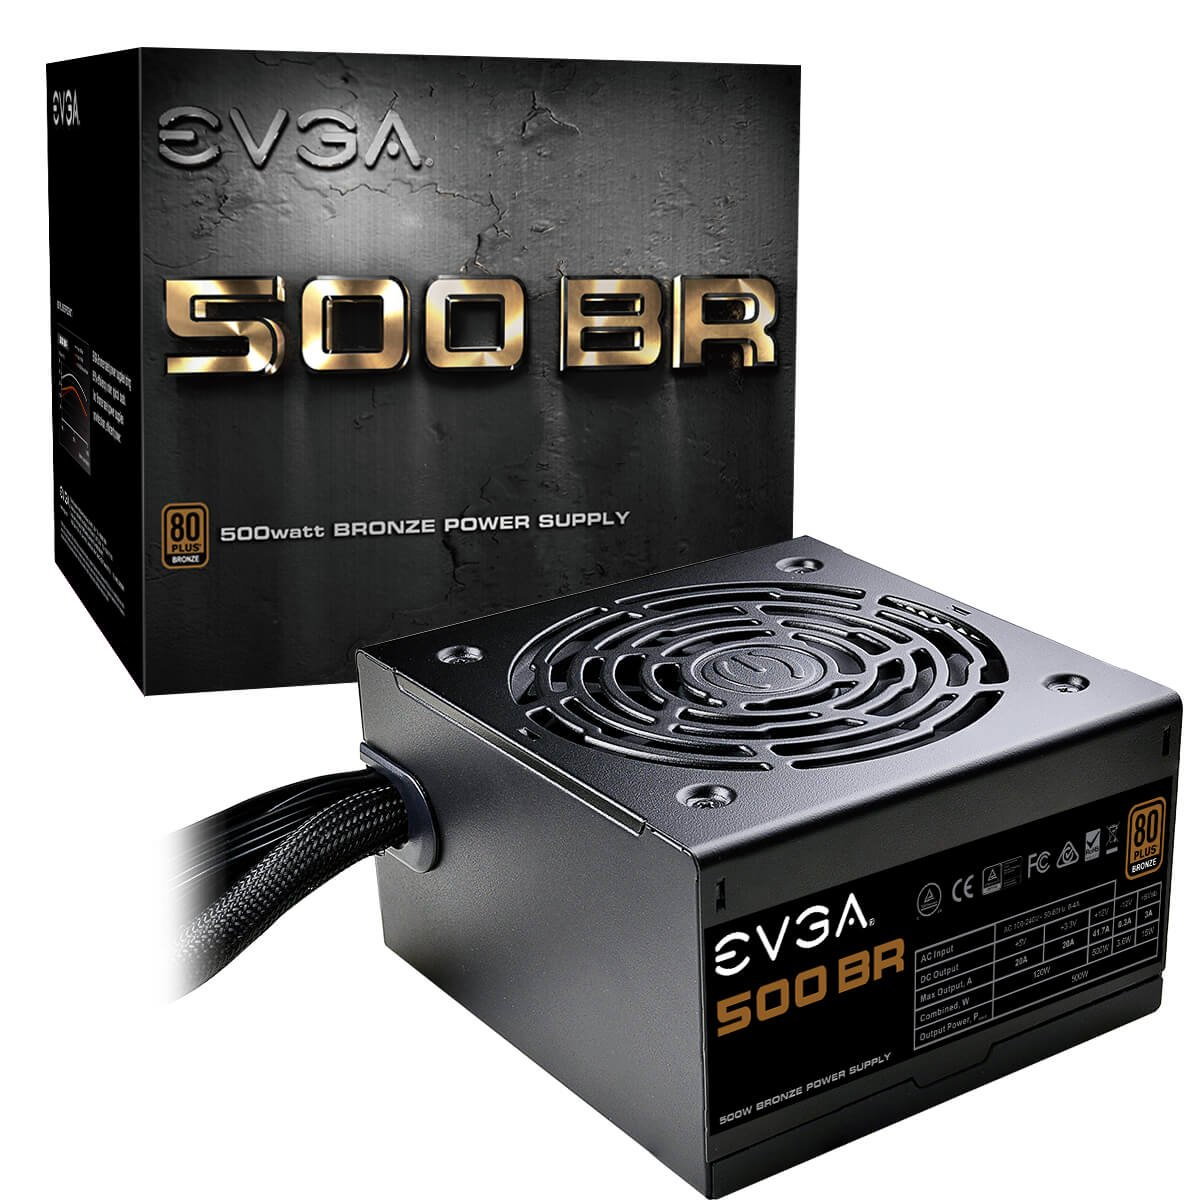 EVGA 500 BR, 80+ Bronze 500W, 3 Year Warranty, Power Supply 100- BR-0500-K1 100-BR-0500-K1